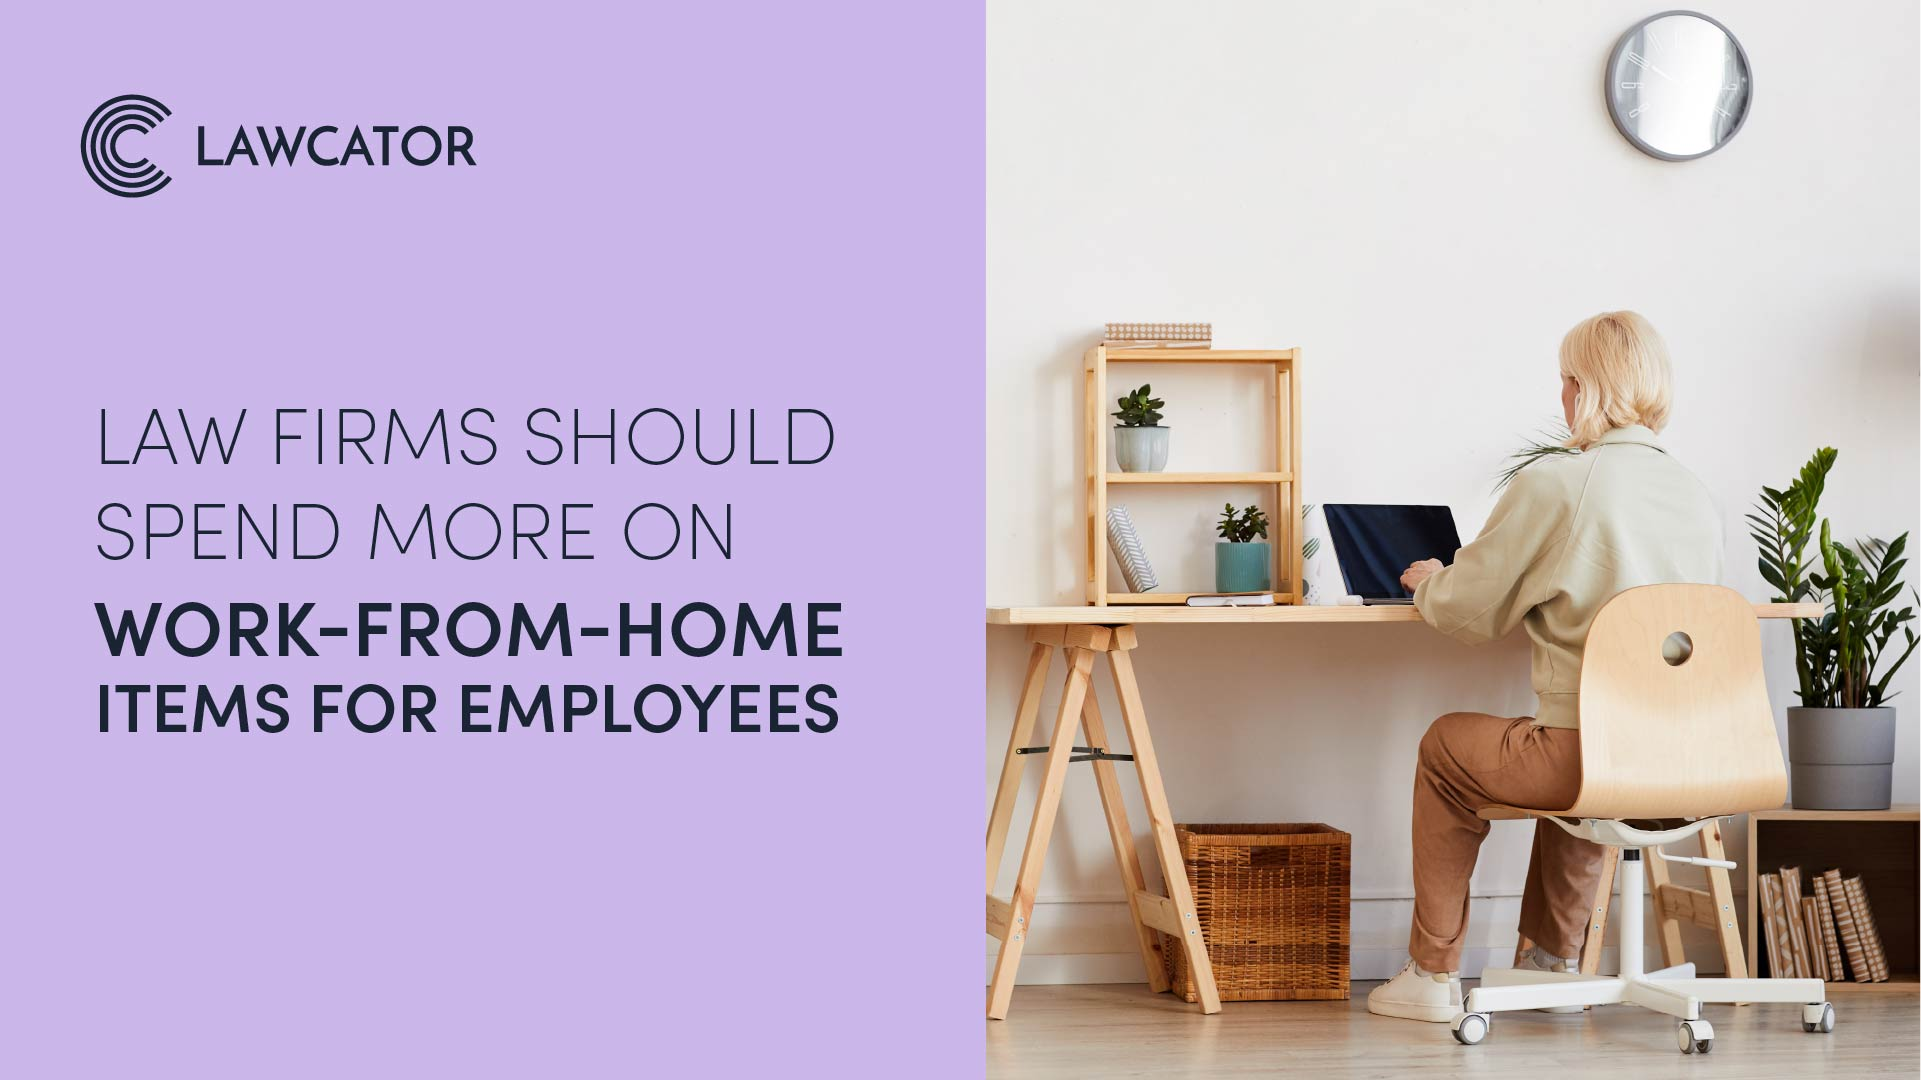 Law Firms Should Spend More on Work-From-Home Items for Employees